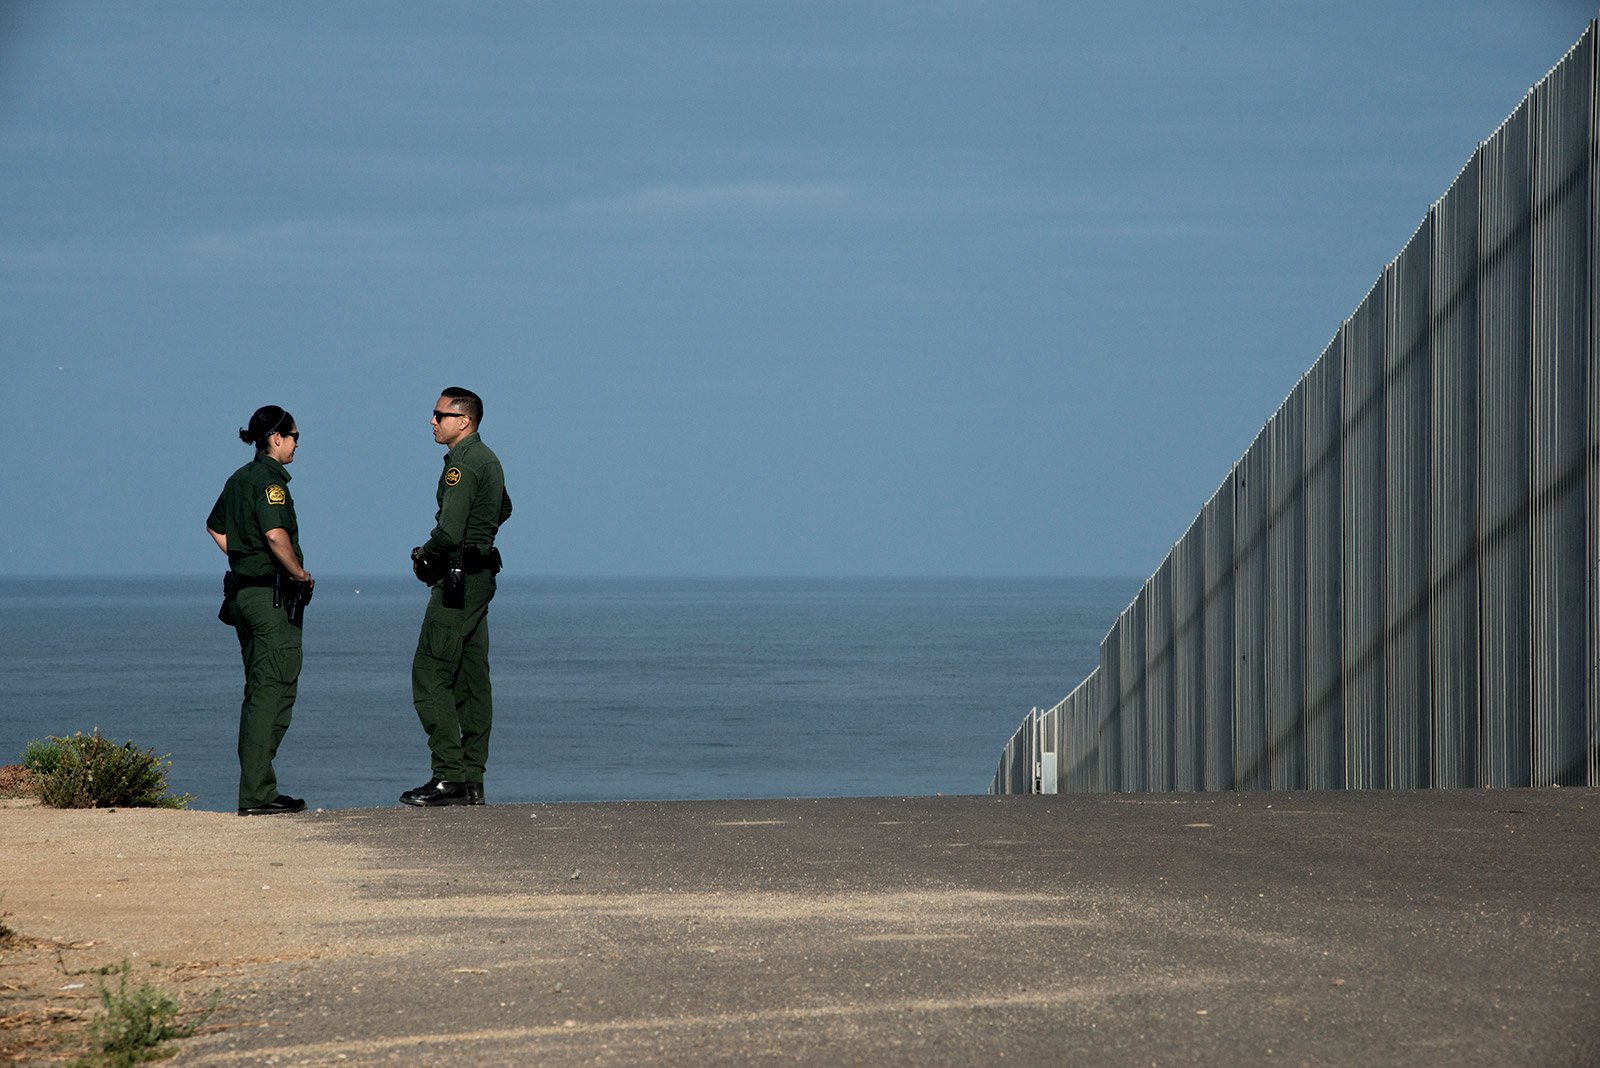 Border Patrol agents Eduardo Olmos, right, and Tekae Michael walk along the frontage road next to primary fencing along the U.S.-Mexico border in San Diego on Aug. 16, 2017. The section of fencing shown here is considered secondary and leads down to the Pacific Ocean. <em>(Brandon Quester/inewsource)</em>